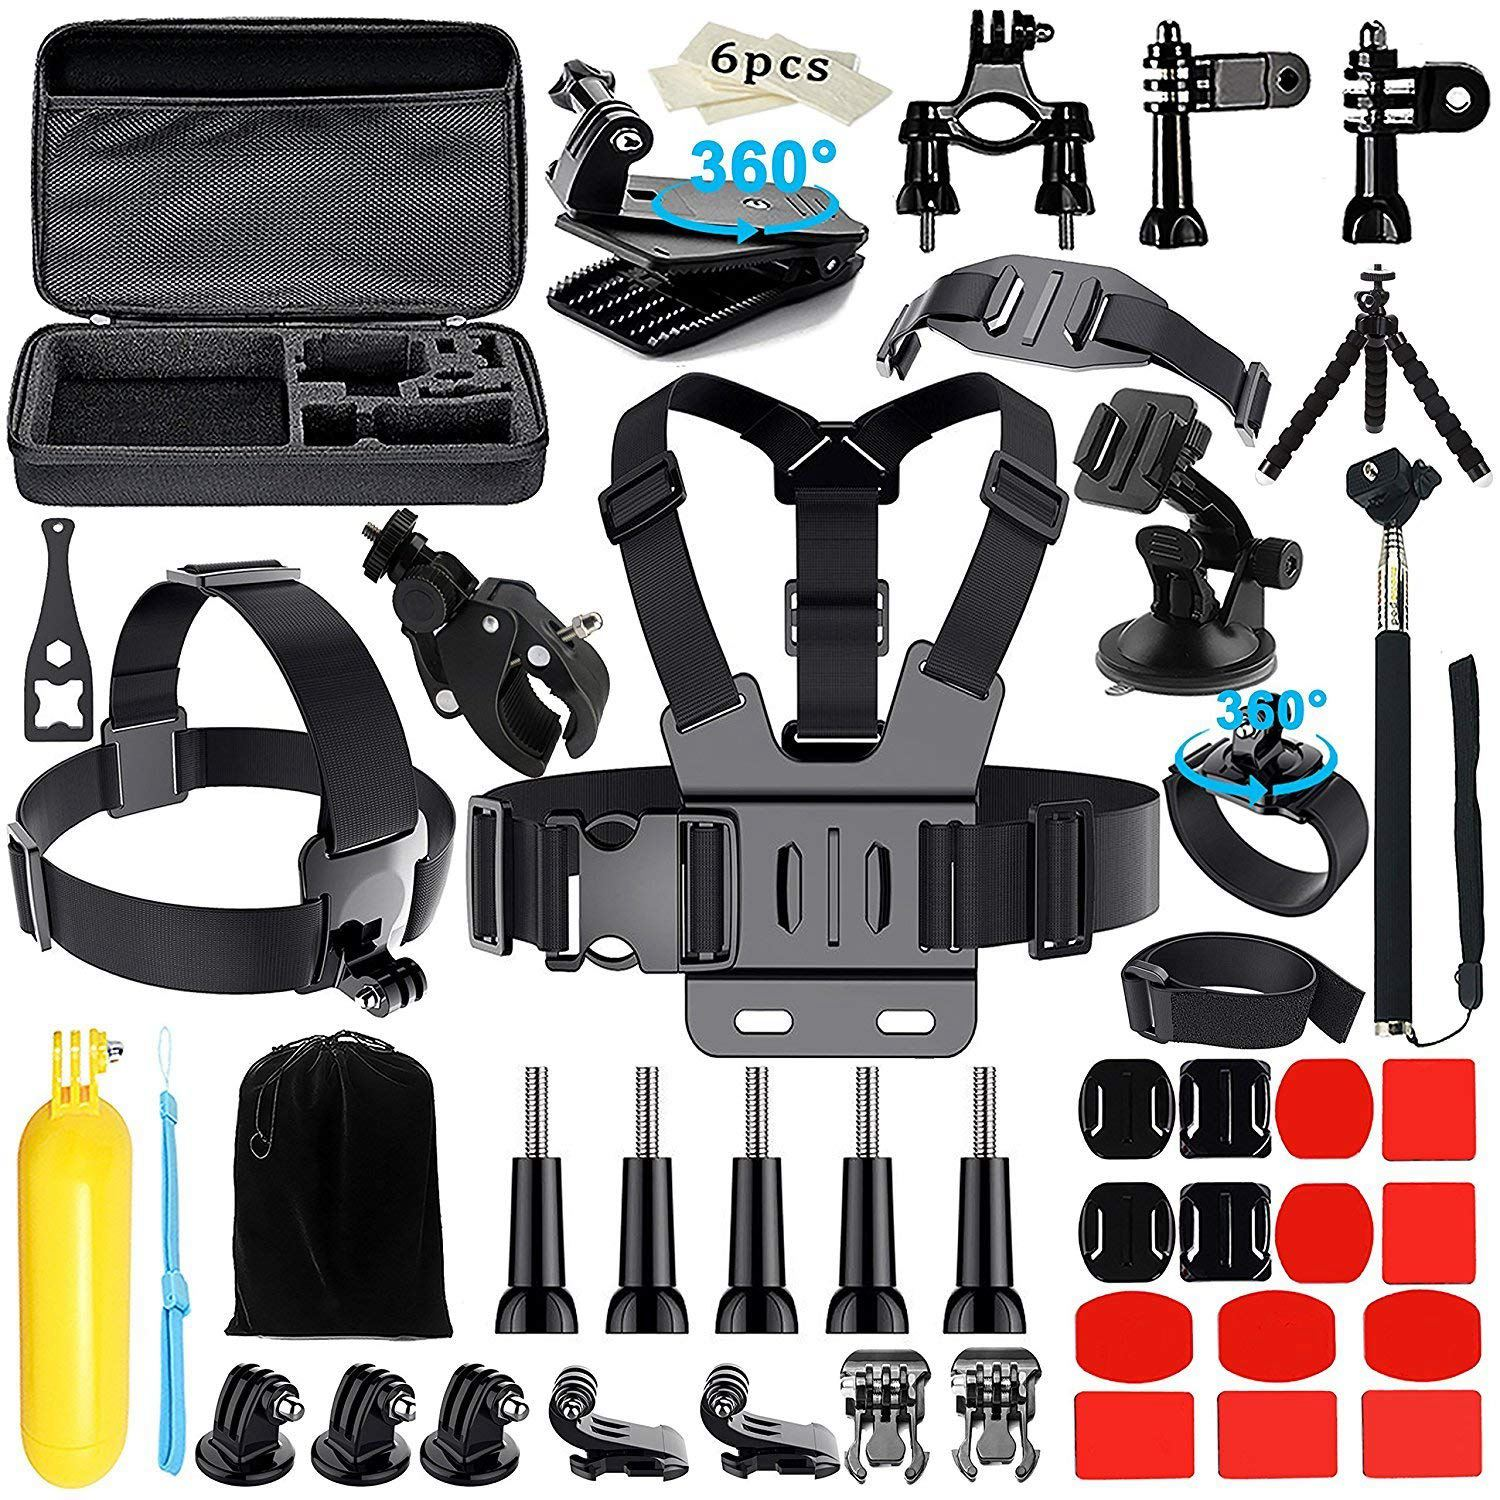 Top Deals Camera Accessories for 3GoPro Hero 2018 Session/6 5 Hero 4+ SJ4000/5000/6000/AKASO/APEMAN/DBPOWER/And S ony Sports D